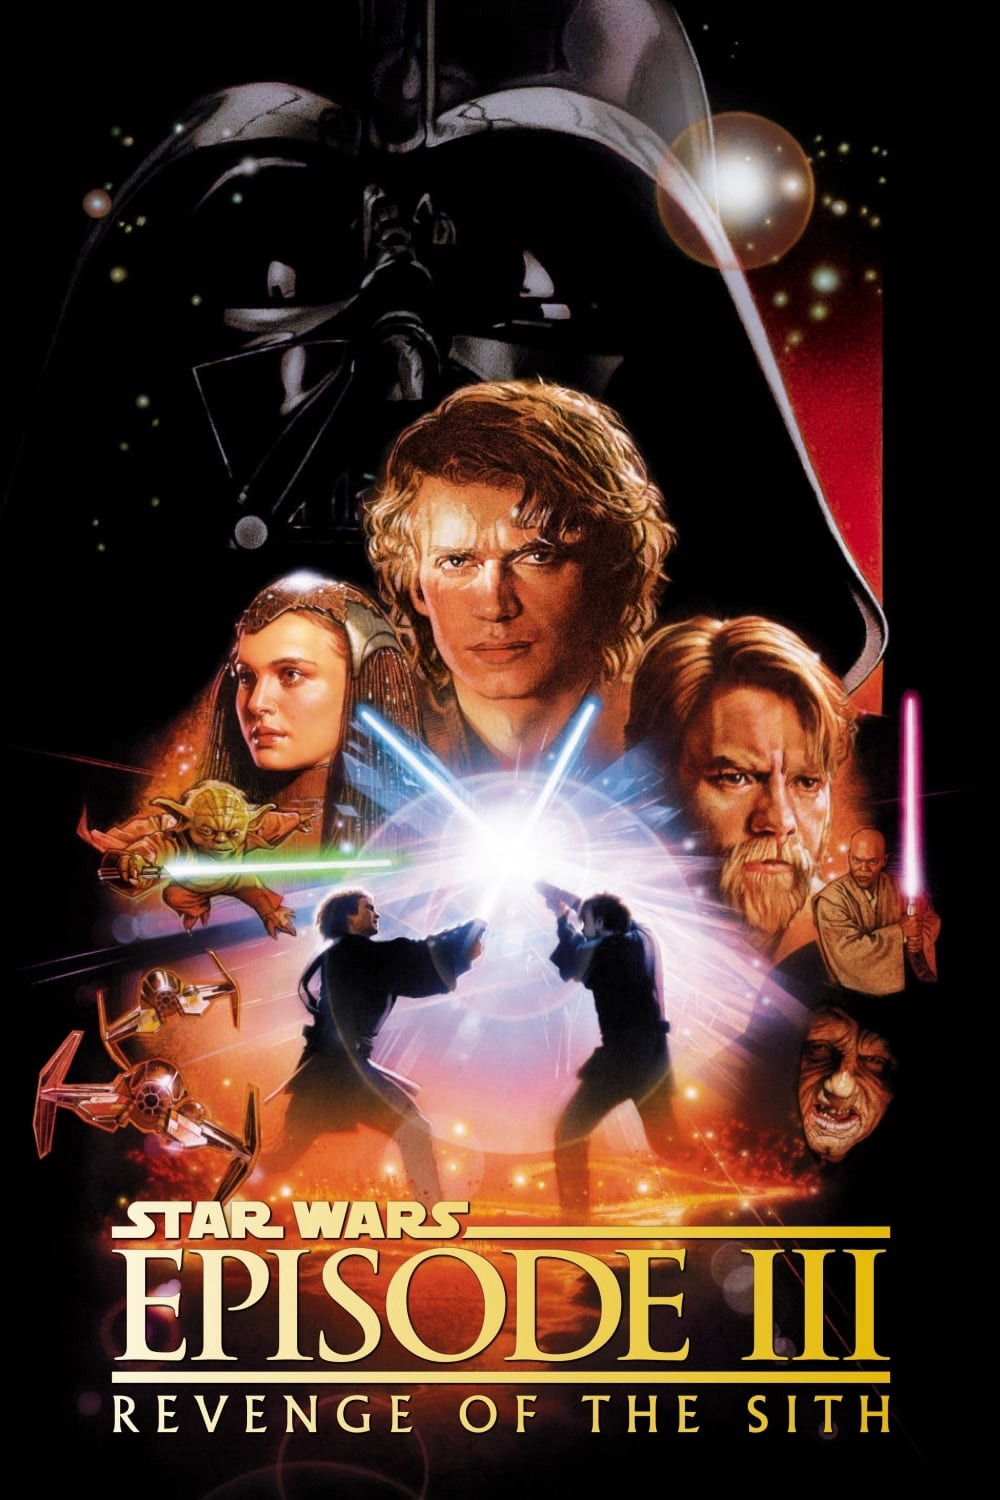 star wars episode 3 stream free